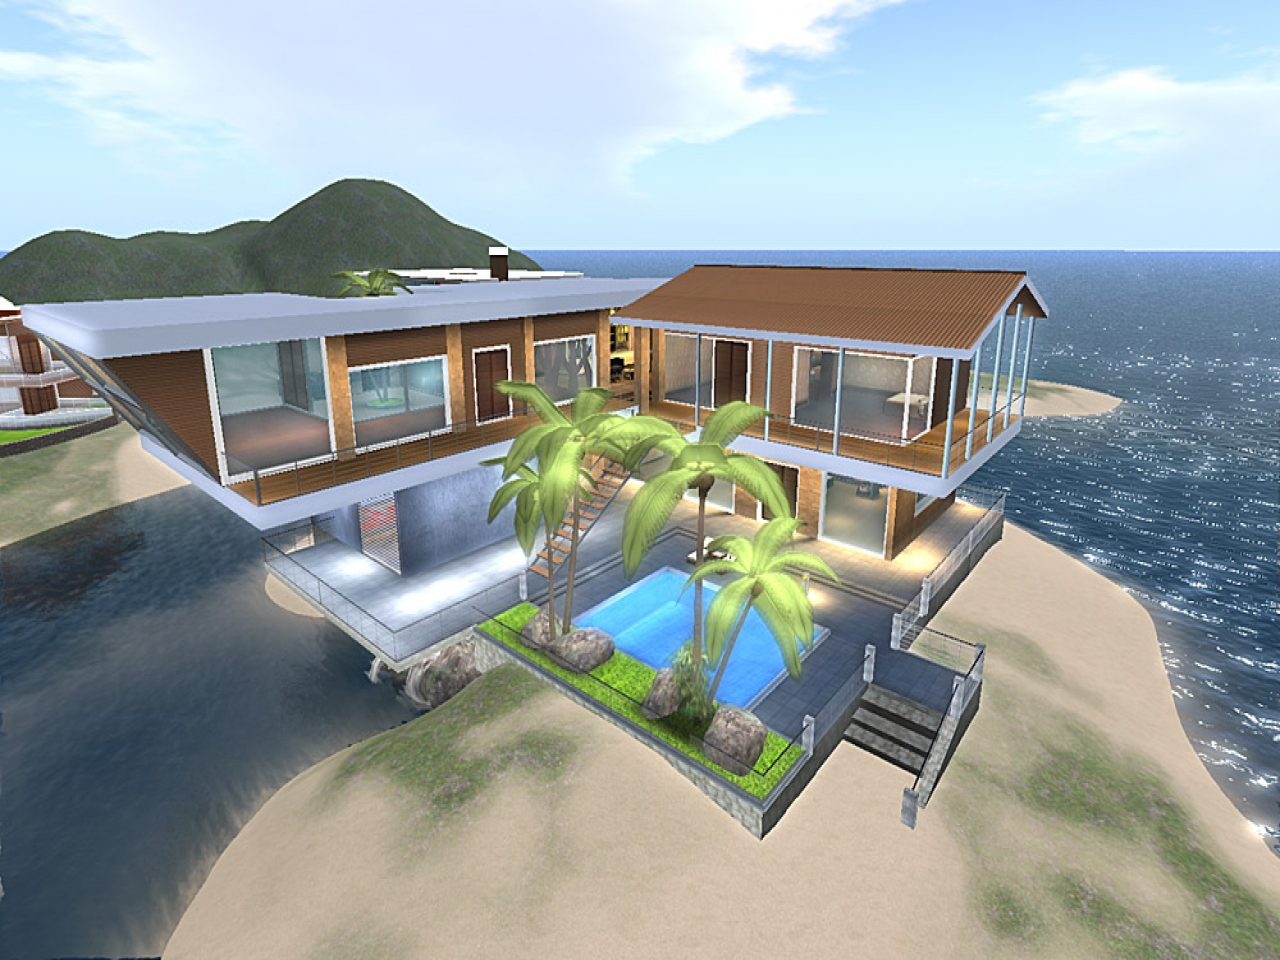 Dream house on beach dream house with pool dream beach for Dream beach house